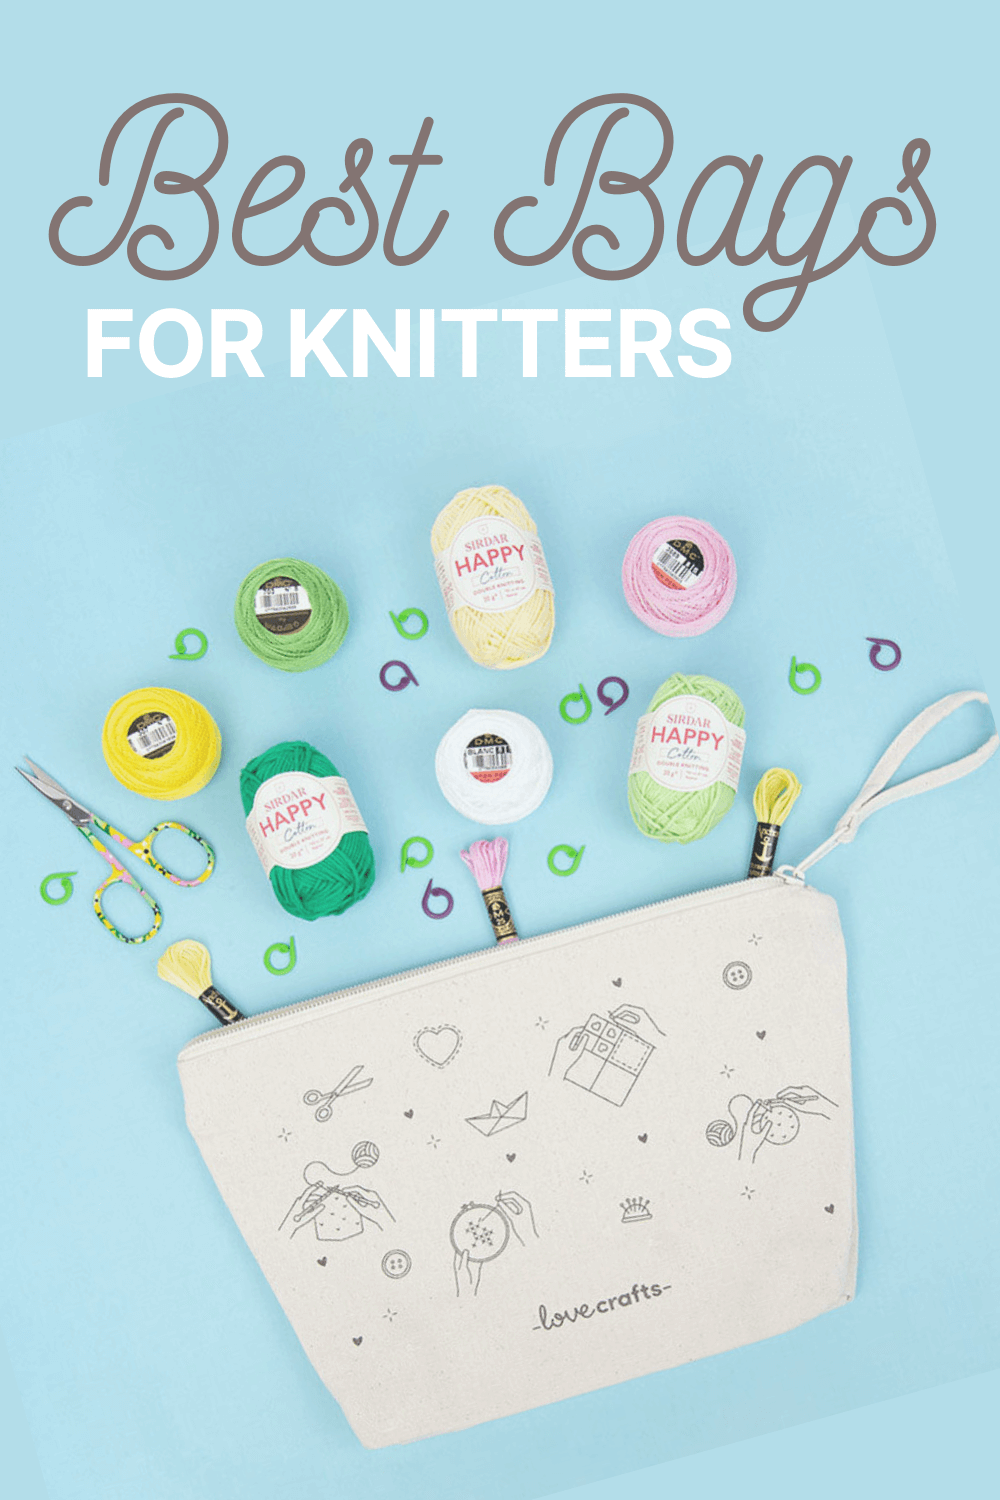 Best project bags for knitters